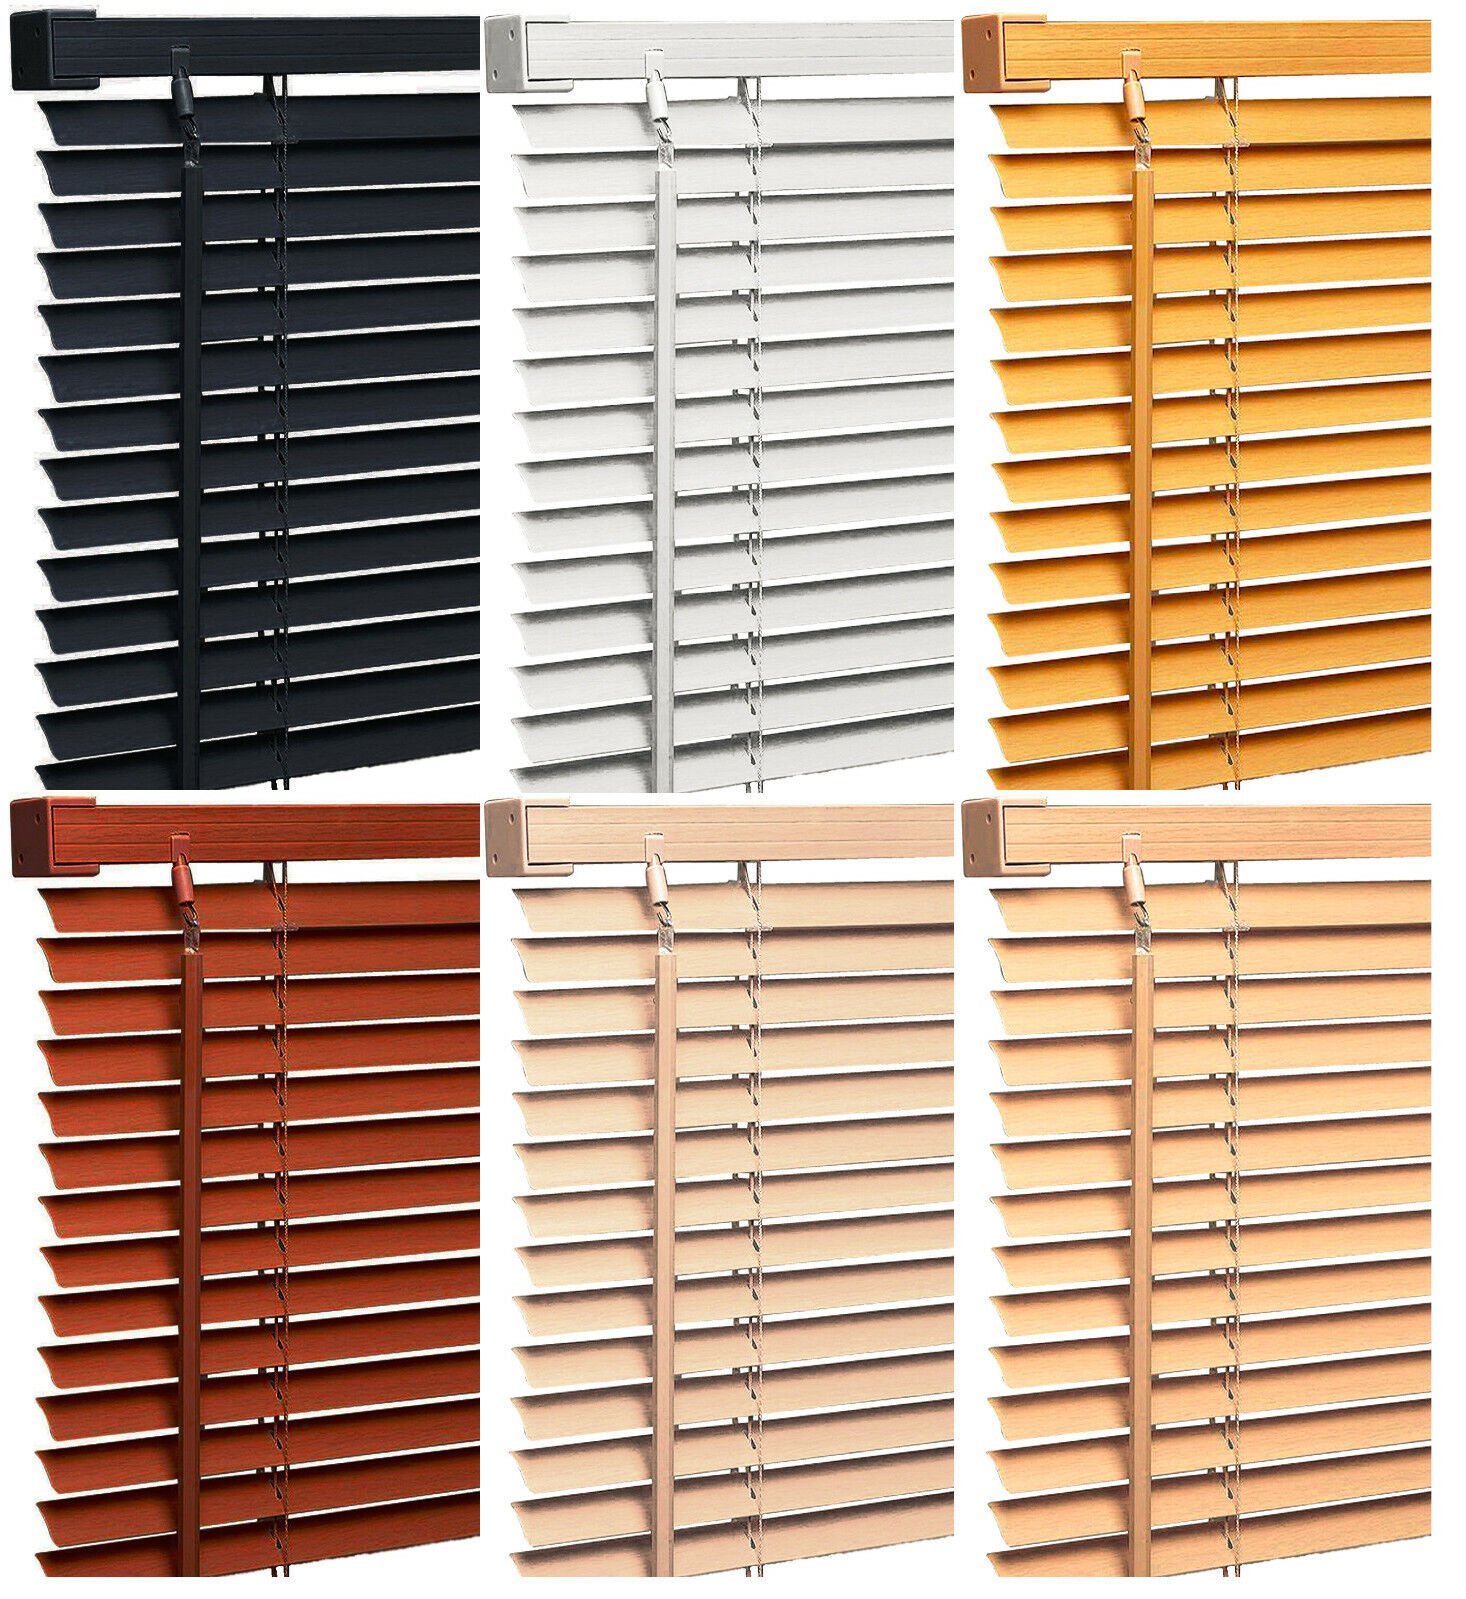 Faux Wood Wooden Venetian Blinds Blind Home Office Window Blind Shade Multi-Size